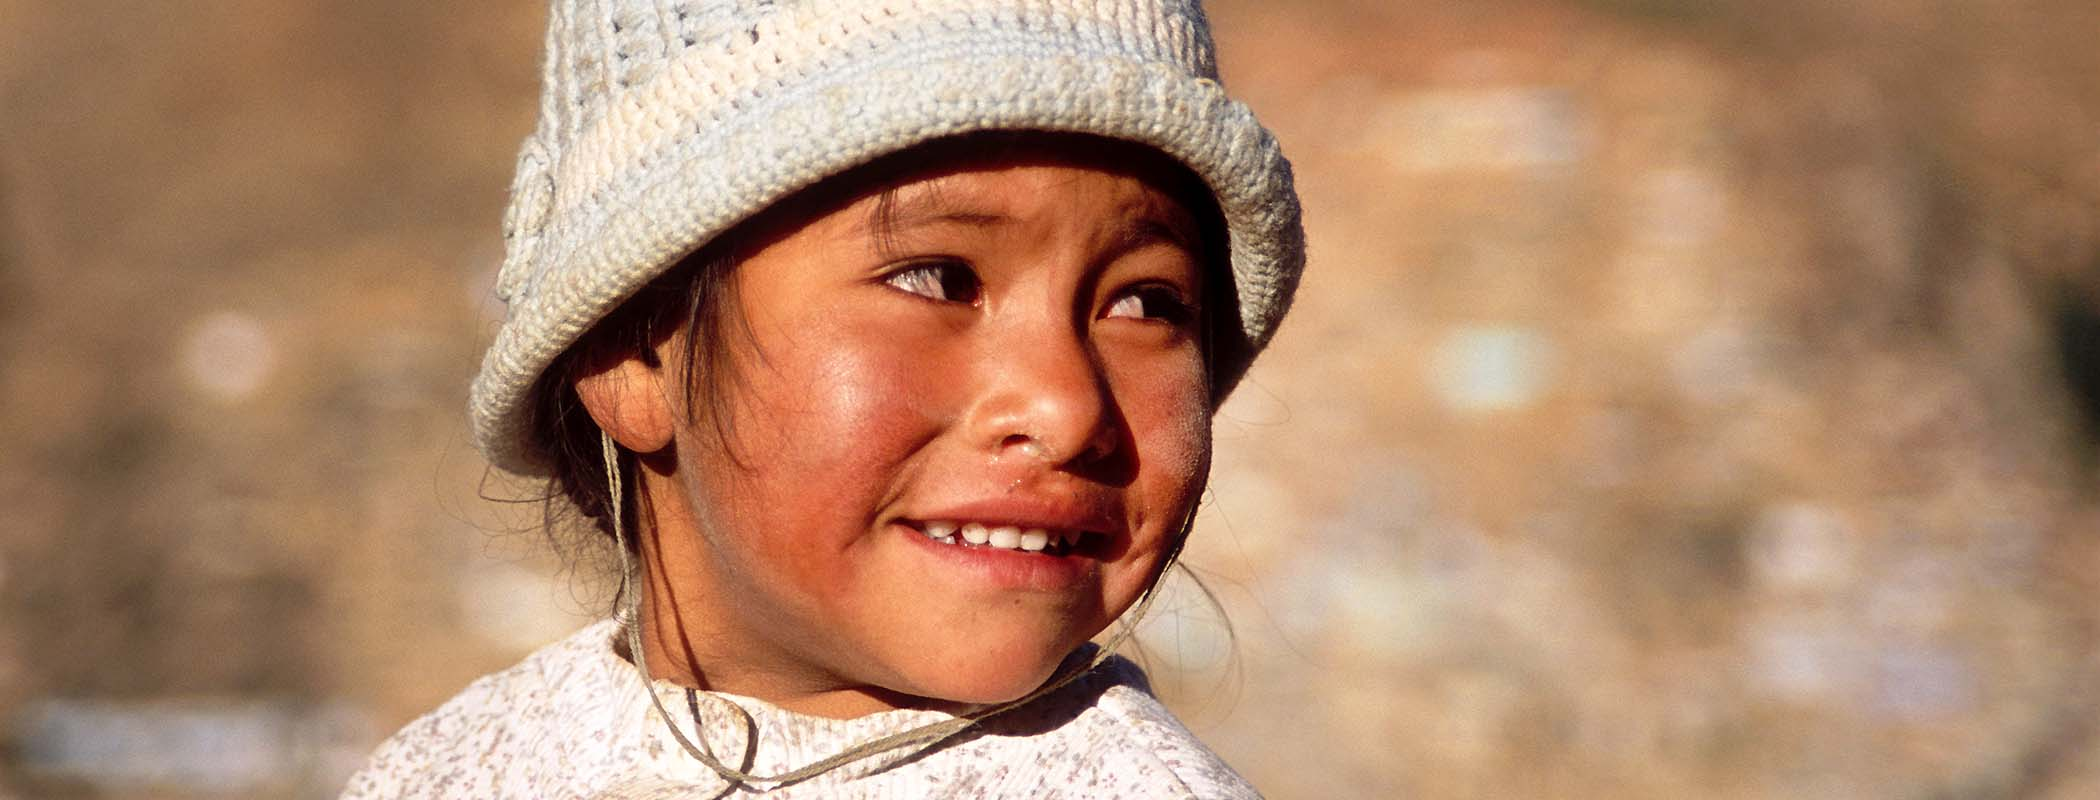 Portrait of a little girl in counrty side of Tarma, PERU